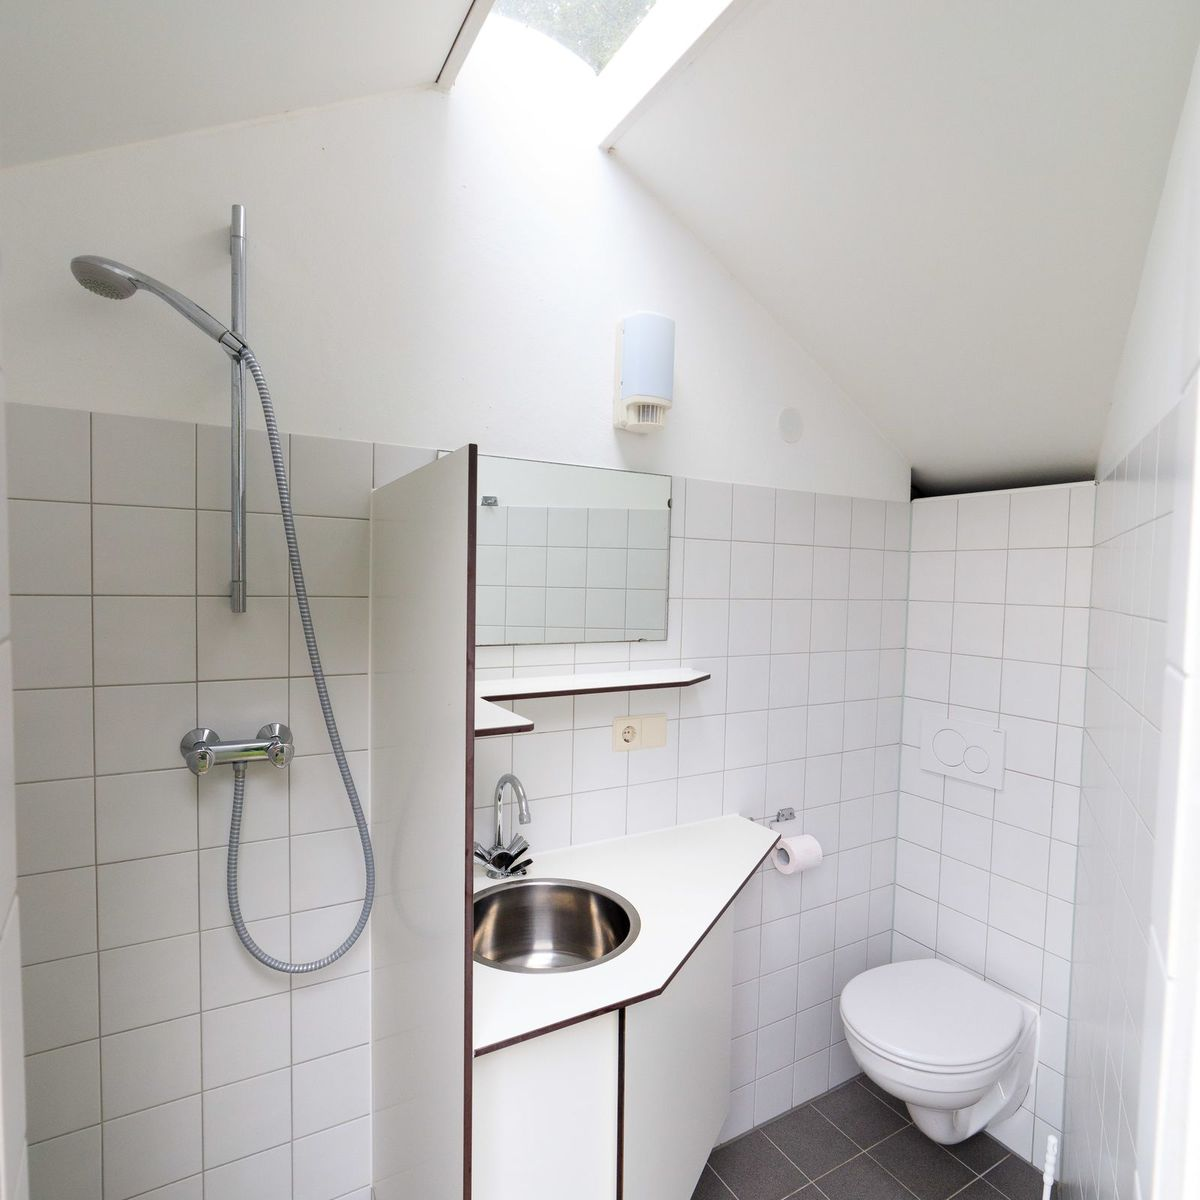 Comfort pitch with private bathroom.